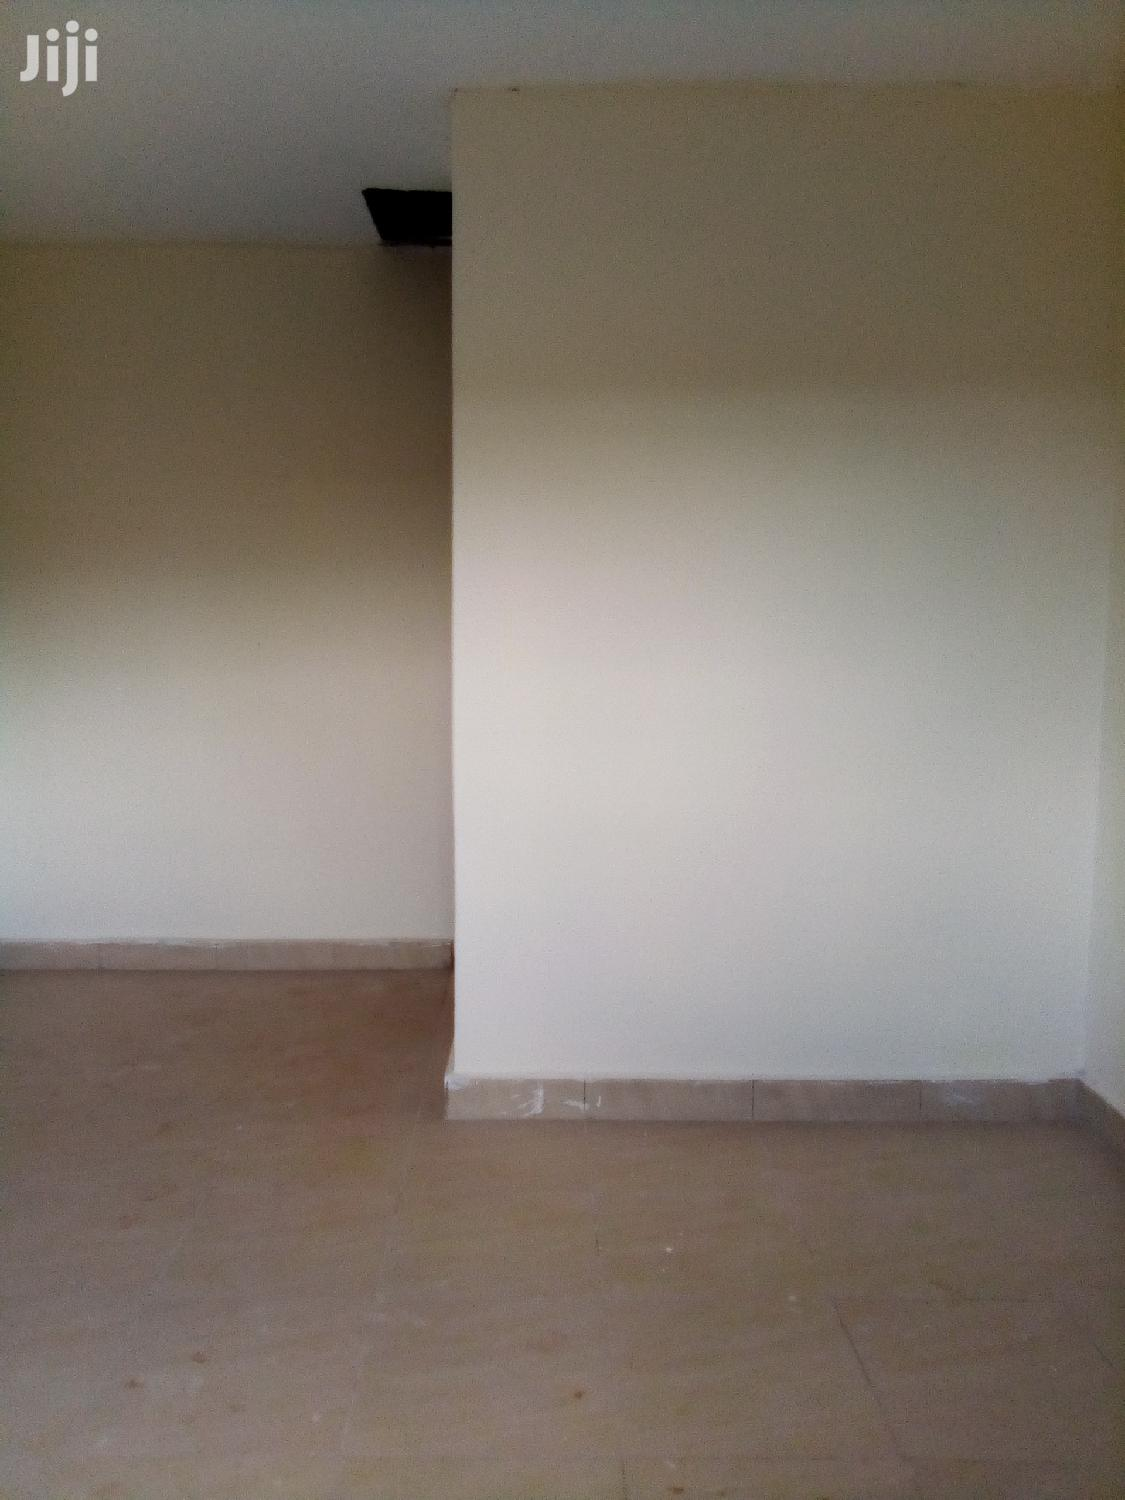 New Single Self Contained Room for Rent in Kitintale